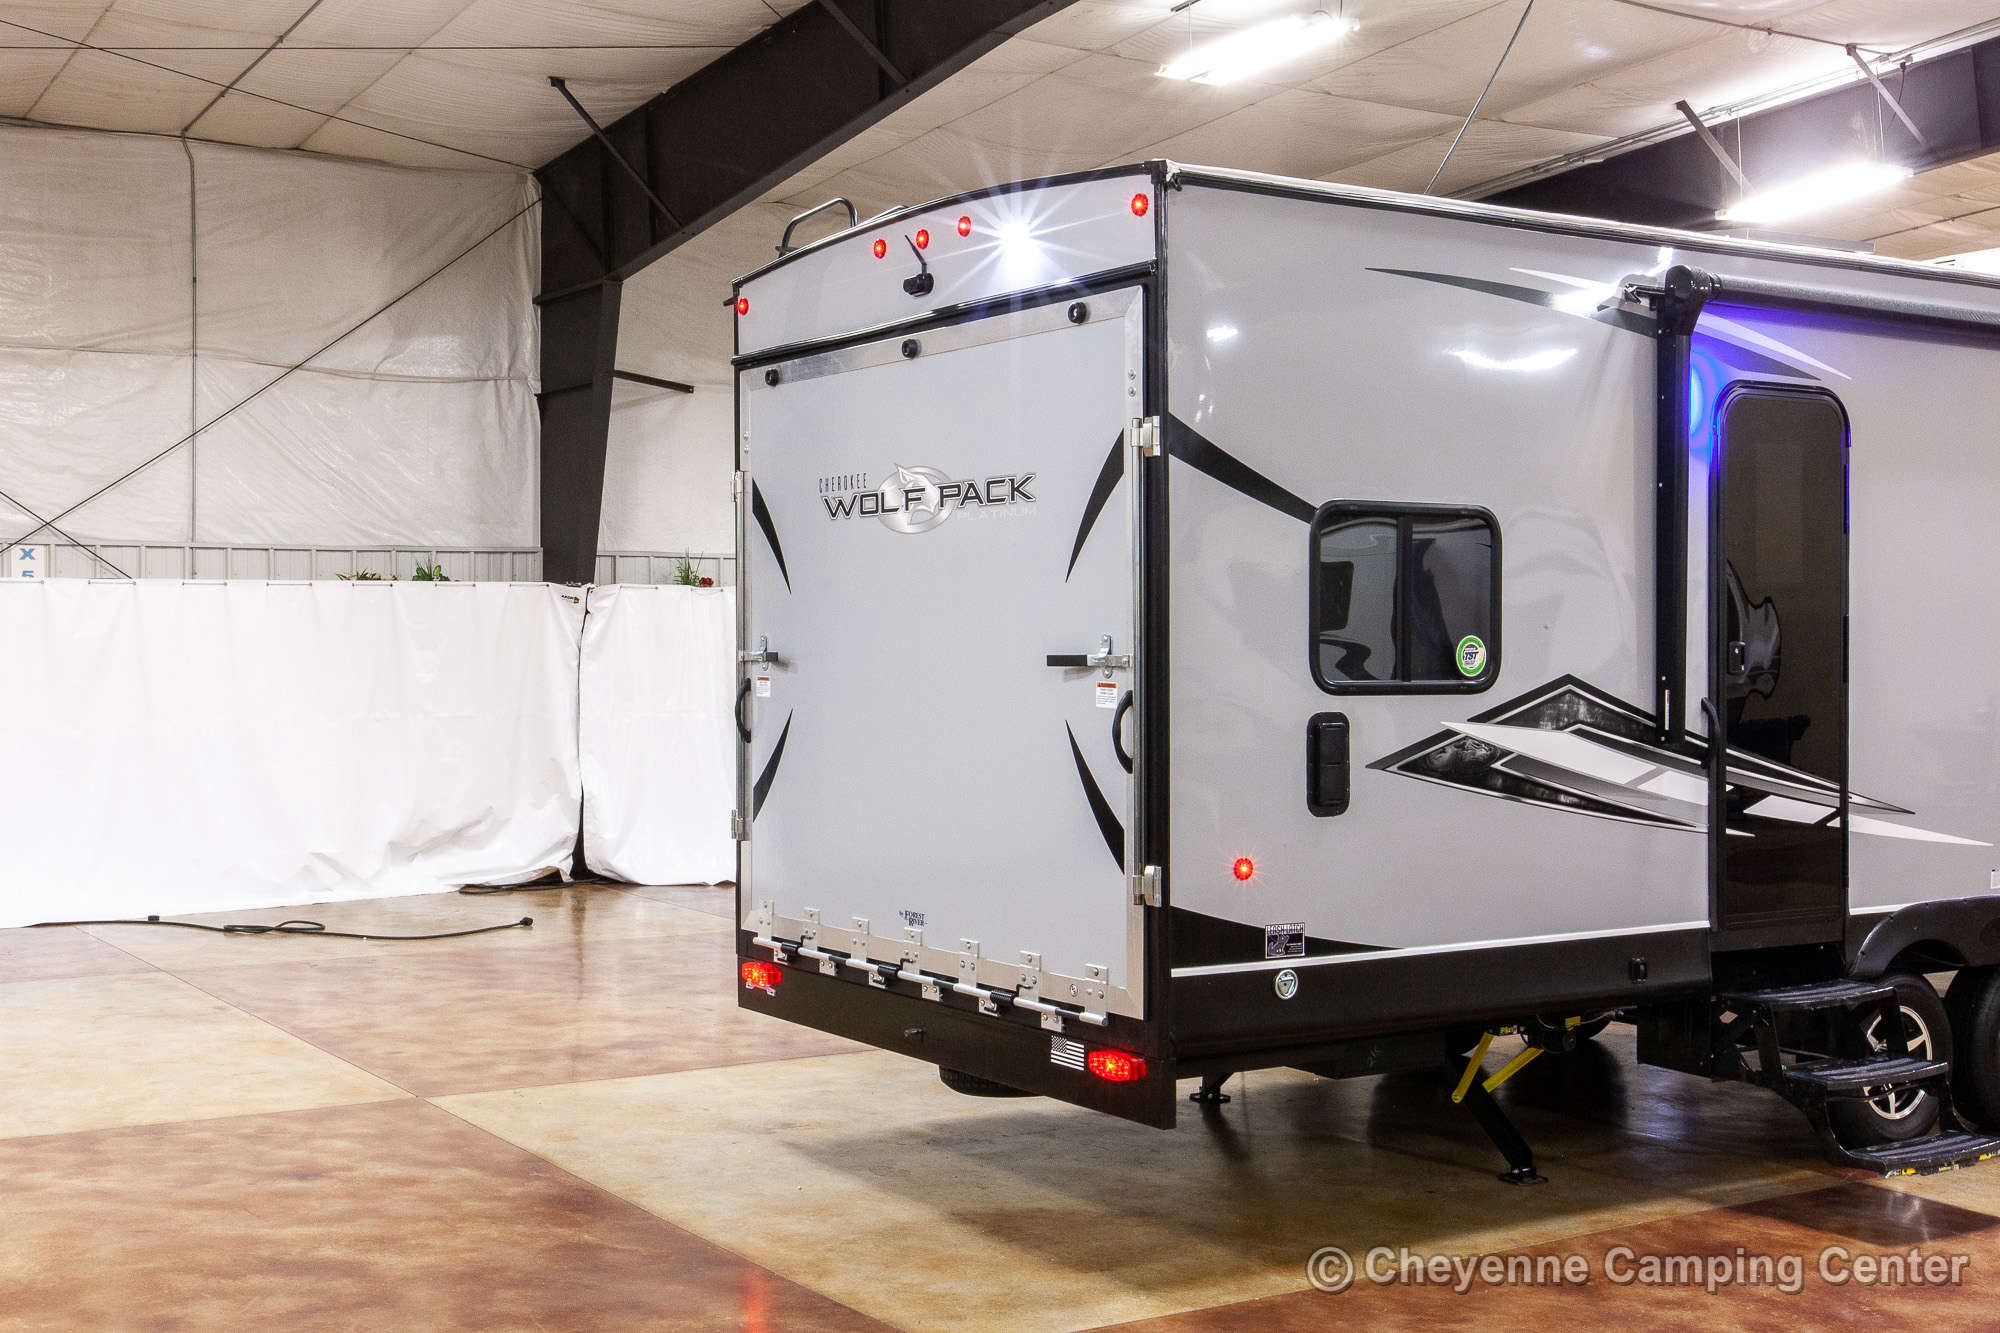 2022 Forest River Cherokee Wolf Pack 25PACK12 Bunkhouse Toy Hauler Travel Trailer Exterior Image